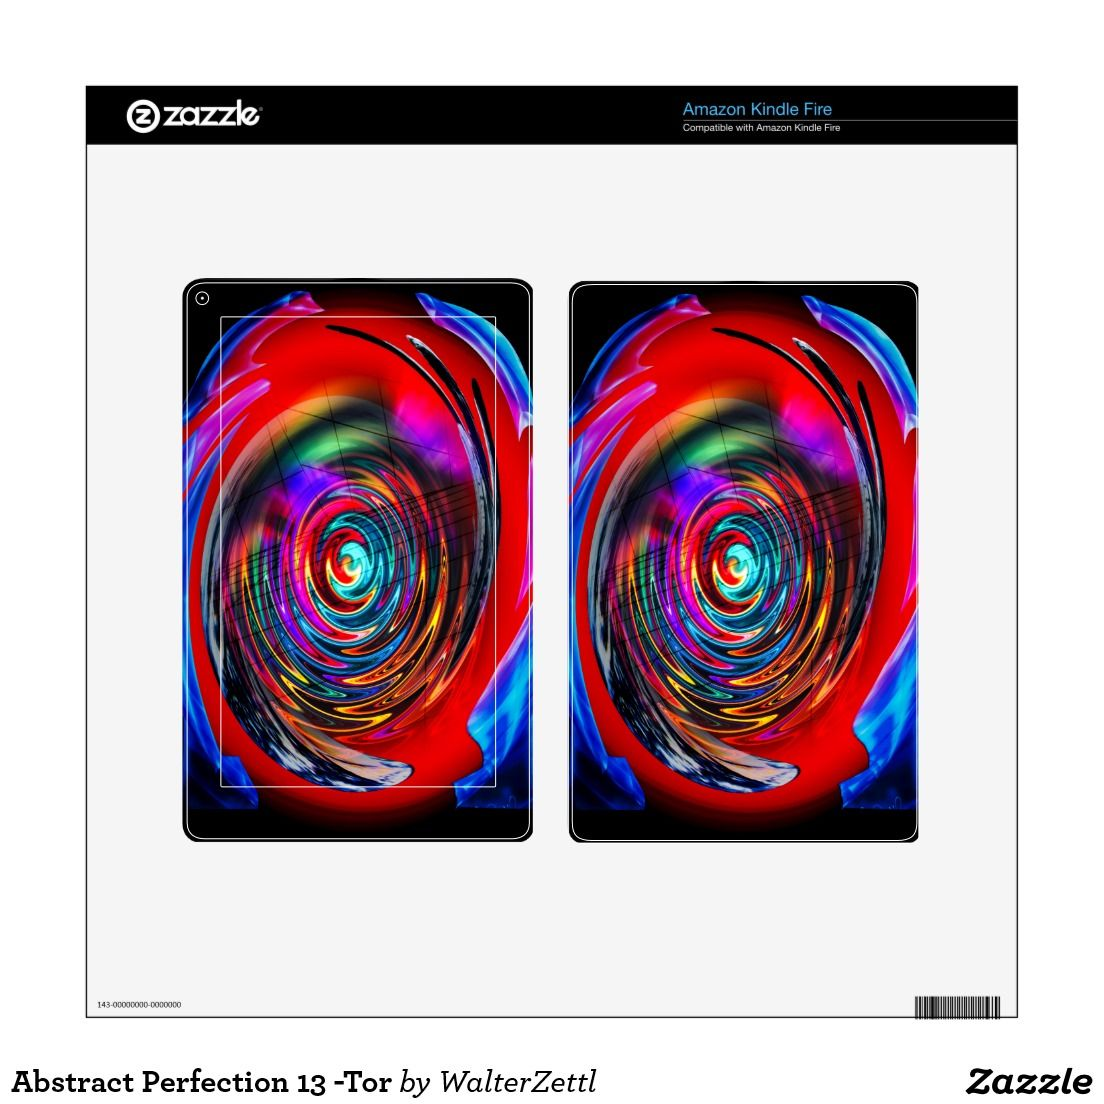 Abstract Perfection 13 -Tor Kindle Fire Decal